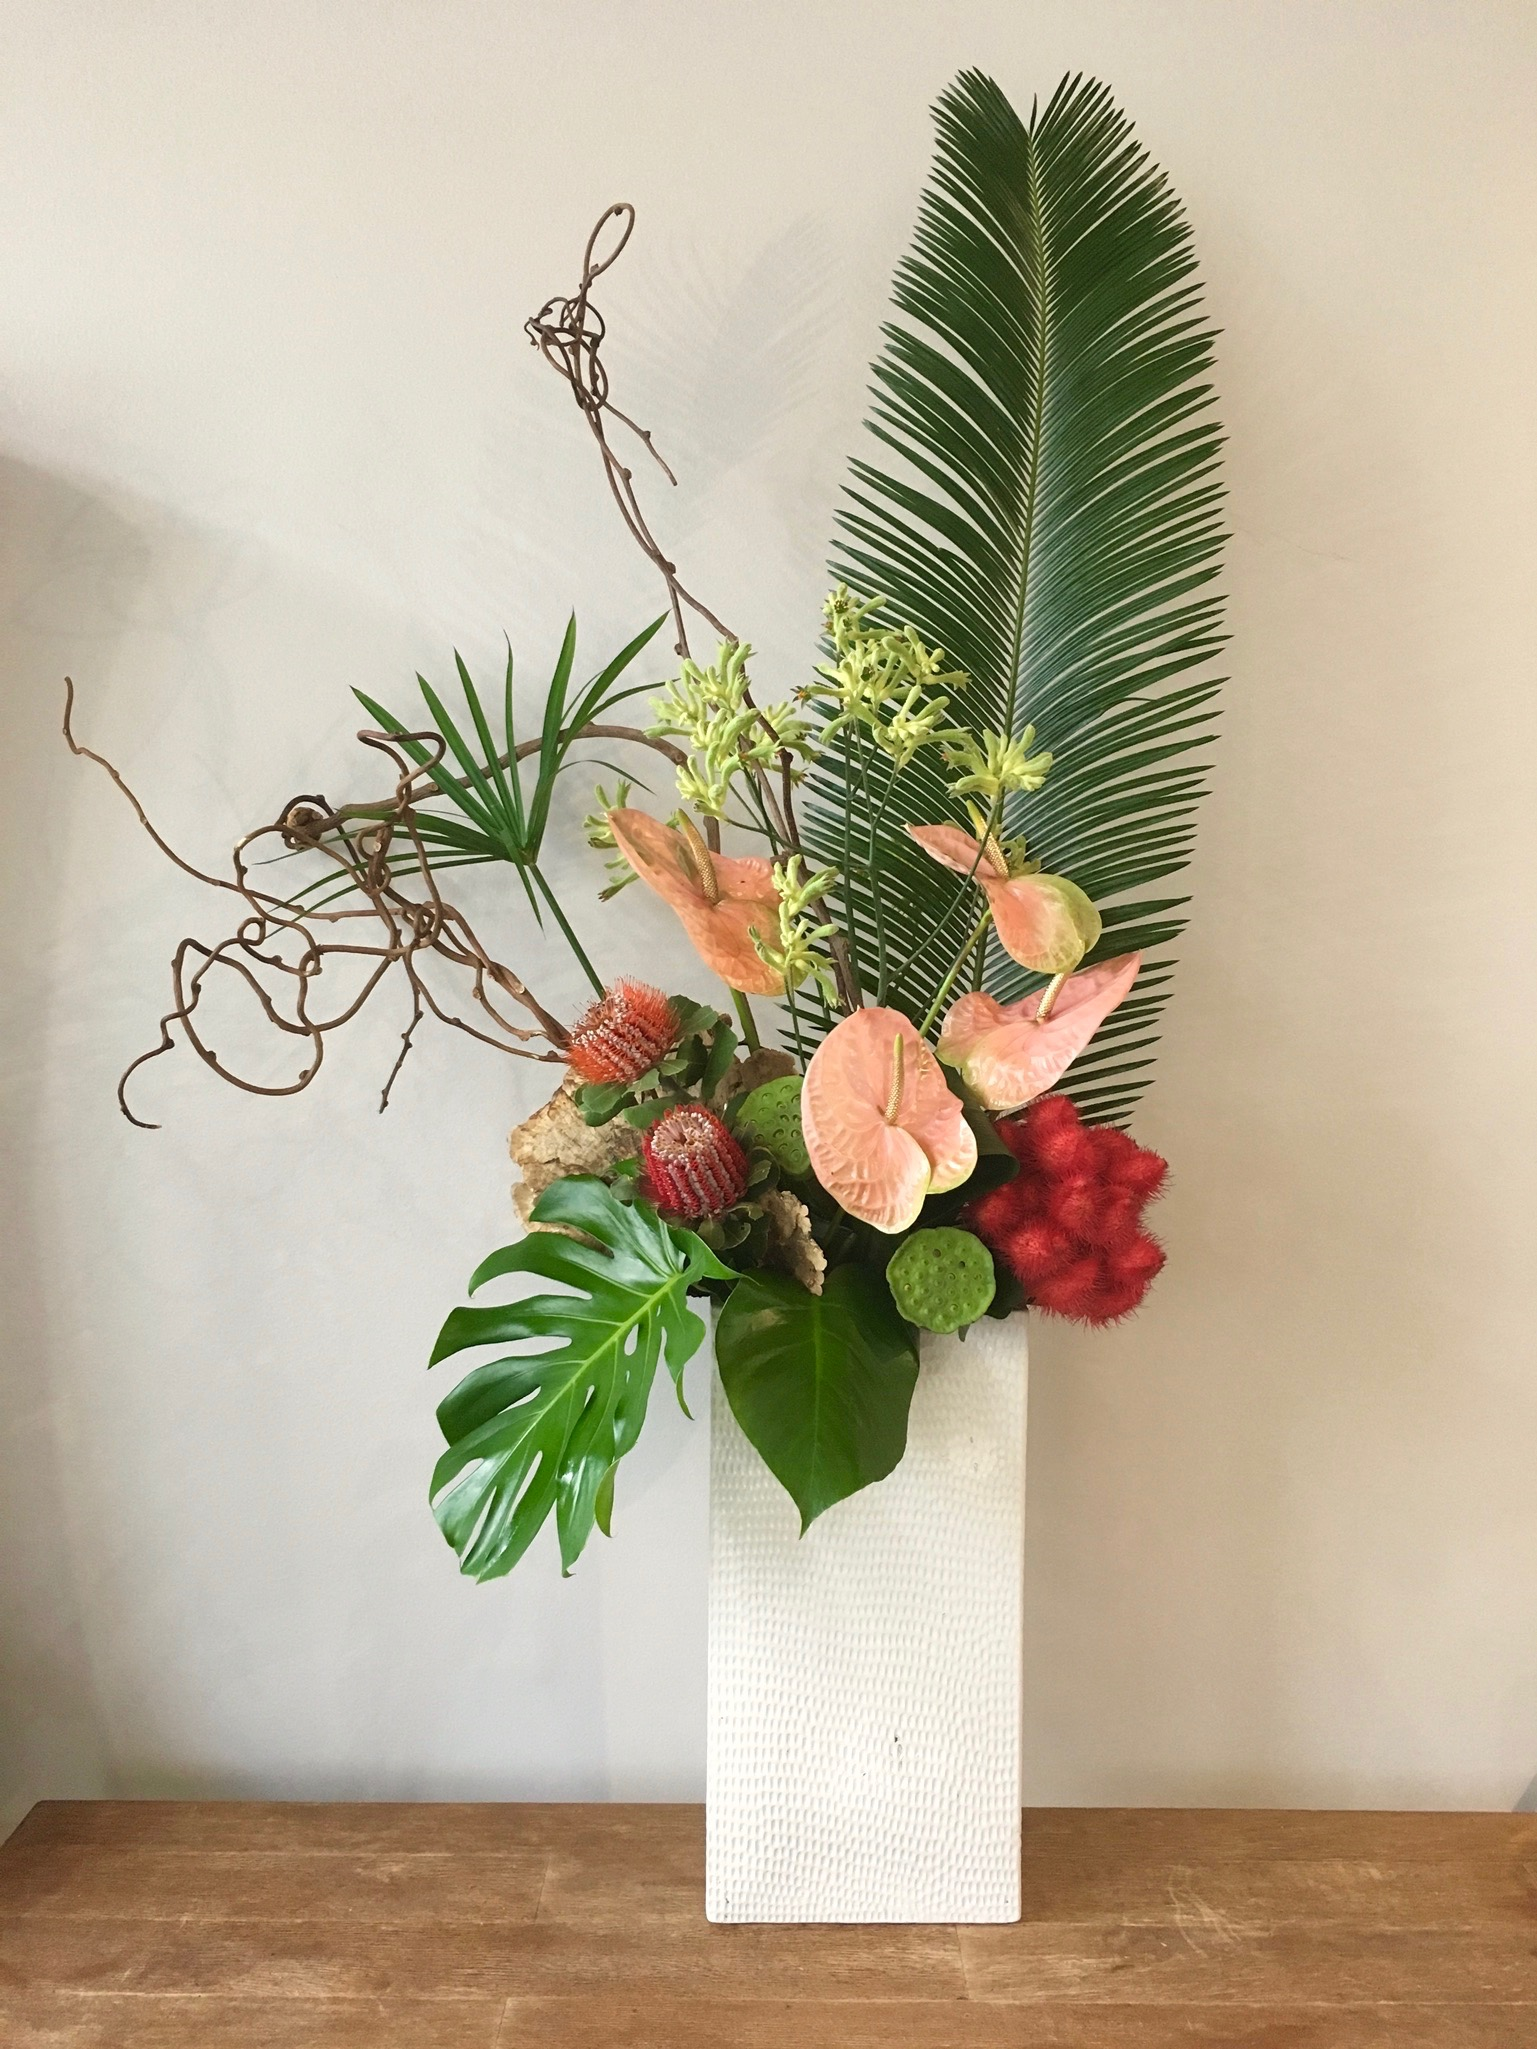 A twist on tropical for one of our weekly subscription clients.